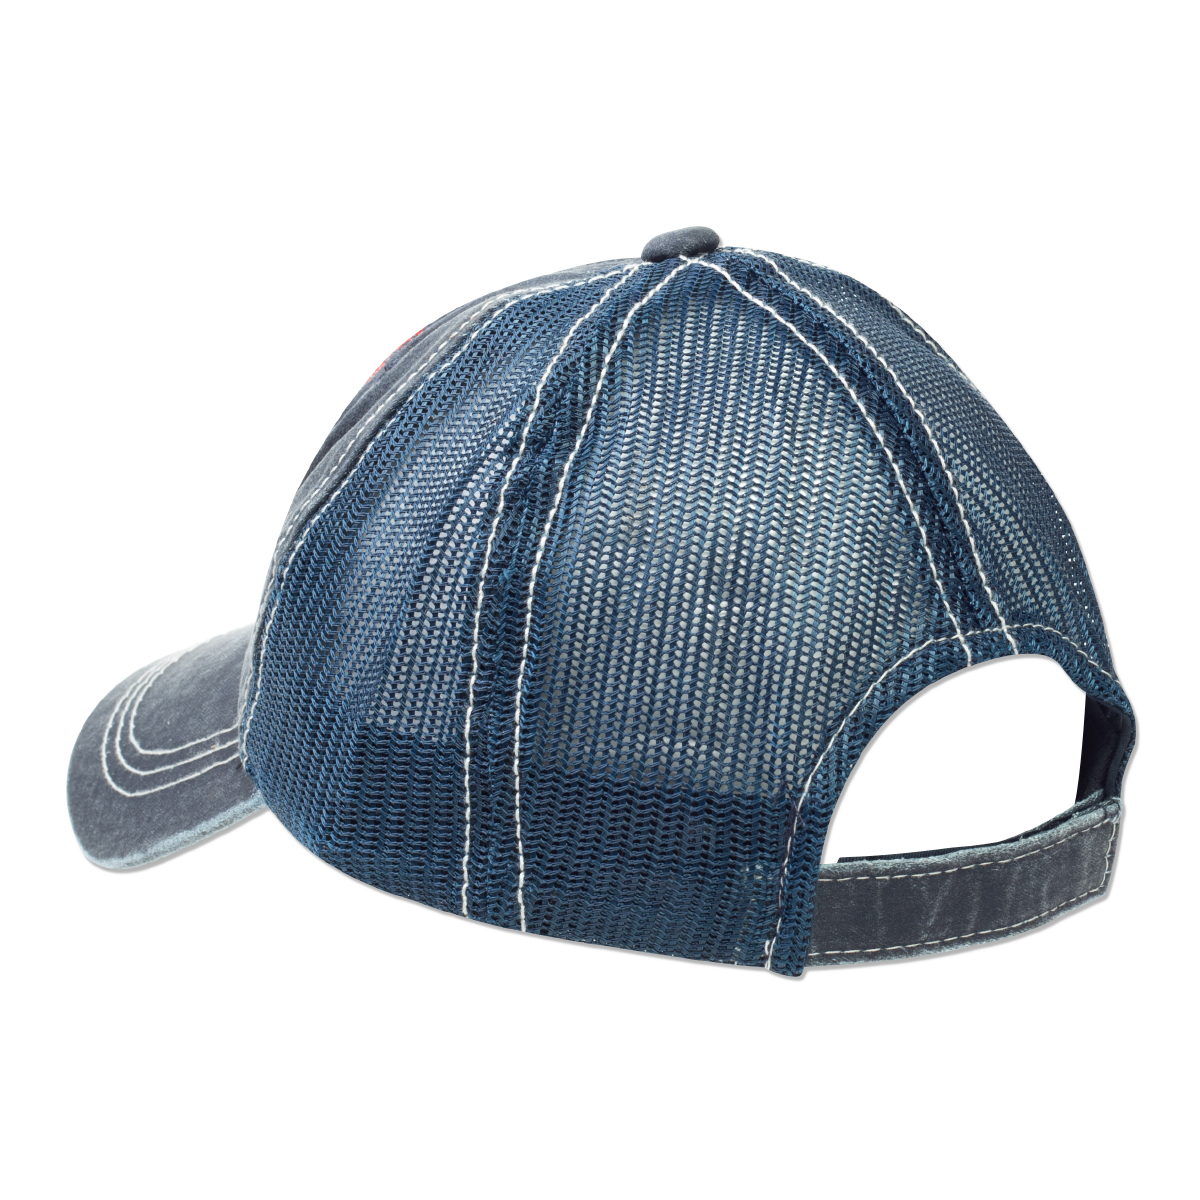 The Lone Bellow Navy Blue Hat